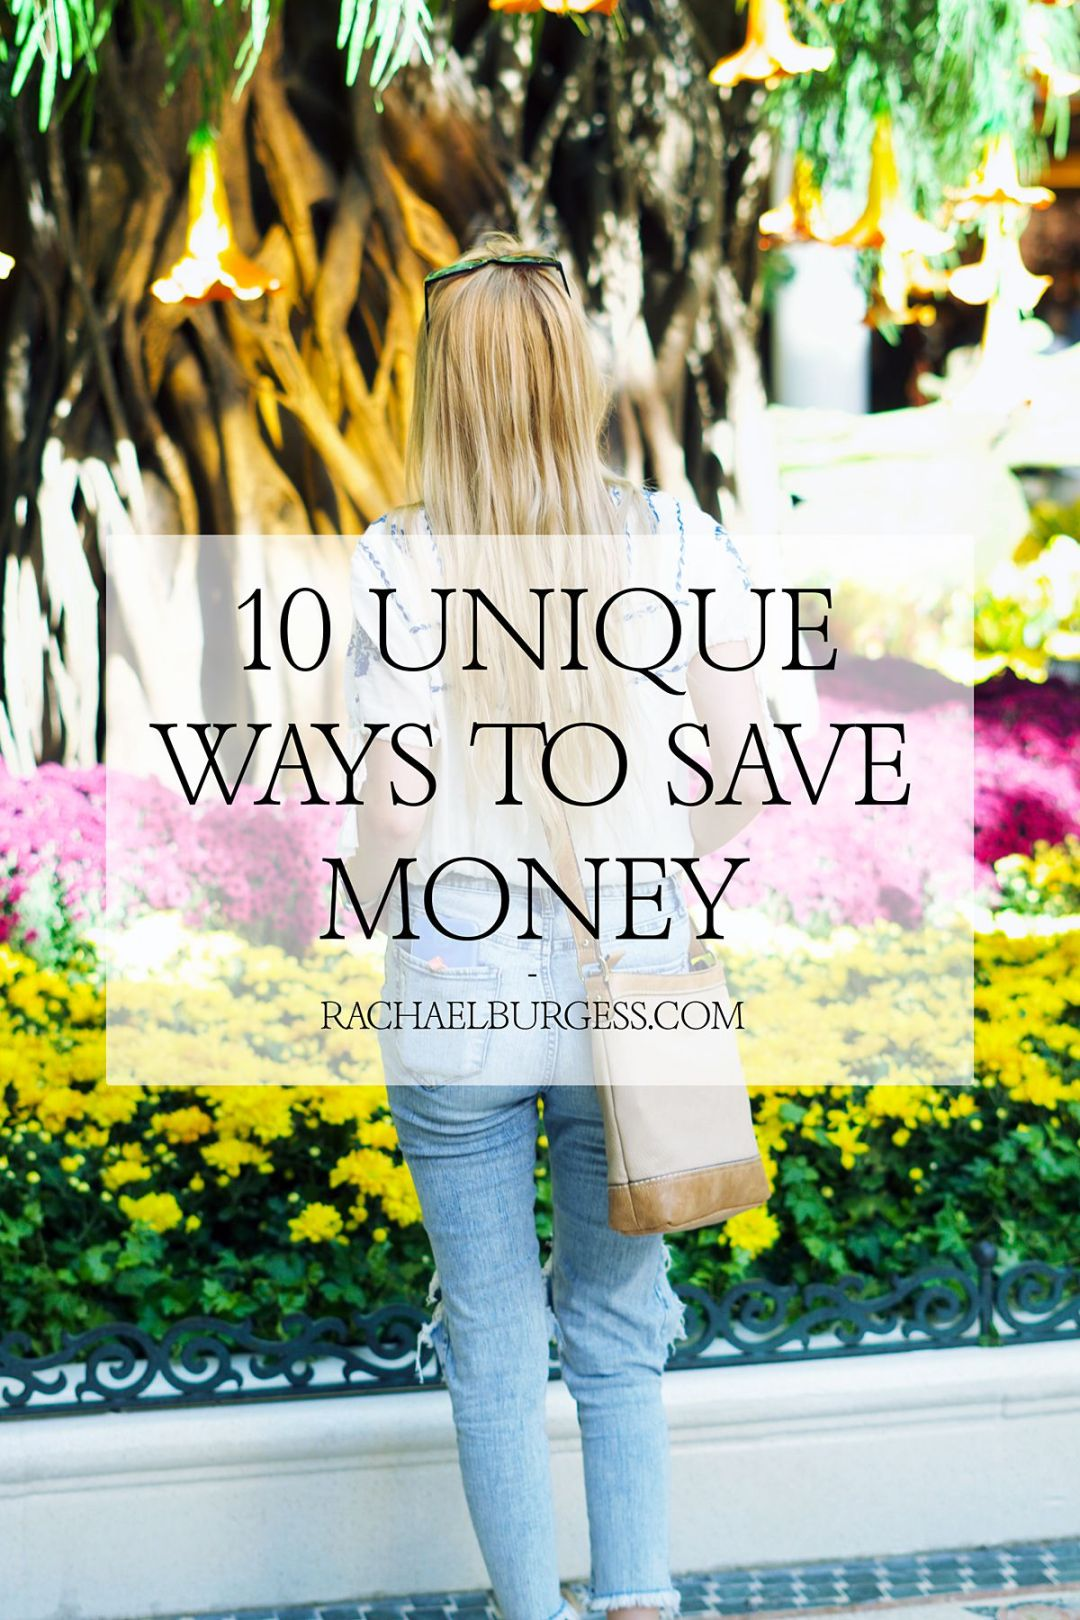 10 Unique Ways to Save Money this Holiday Season | Rachael Burgess